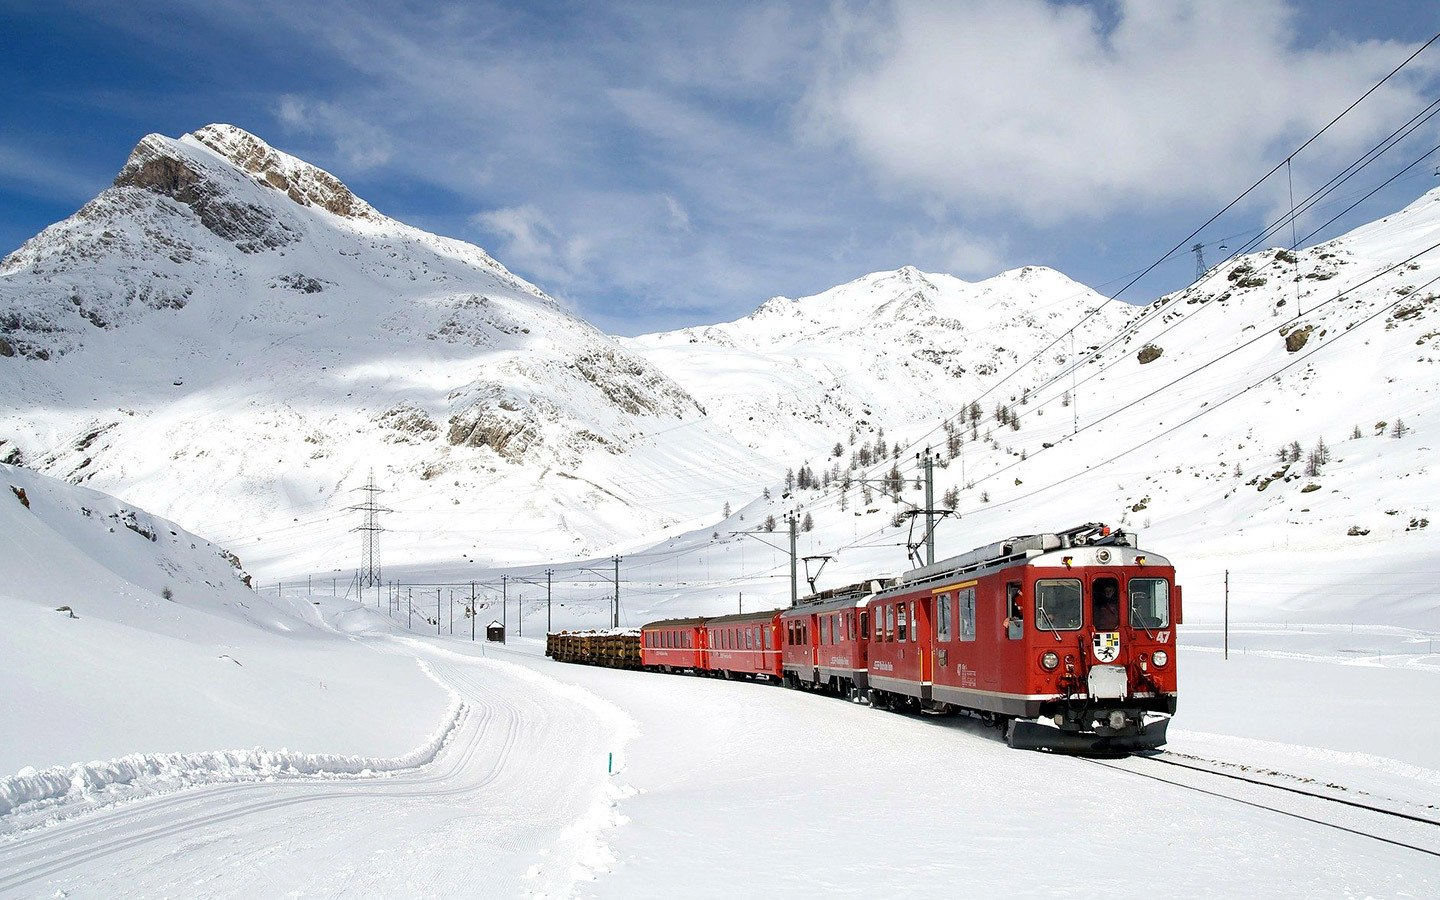 The Bernina Express in winter, one of Northern Europe's most scenic trains